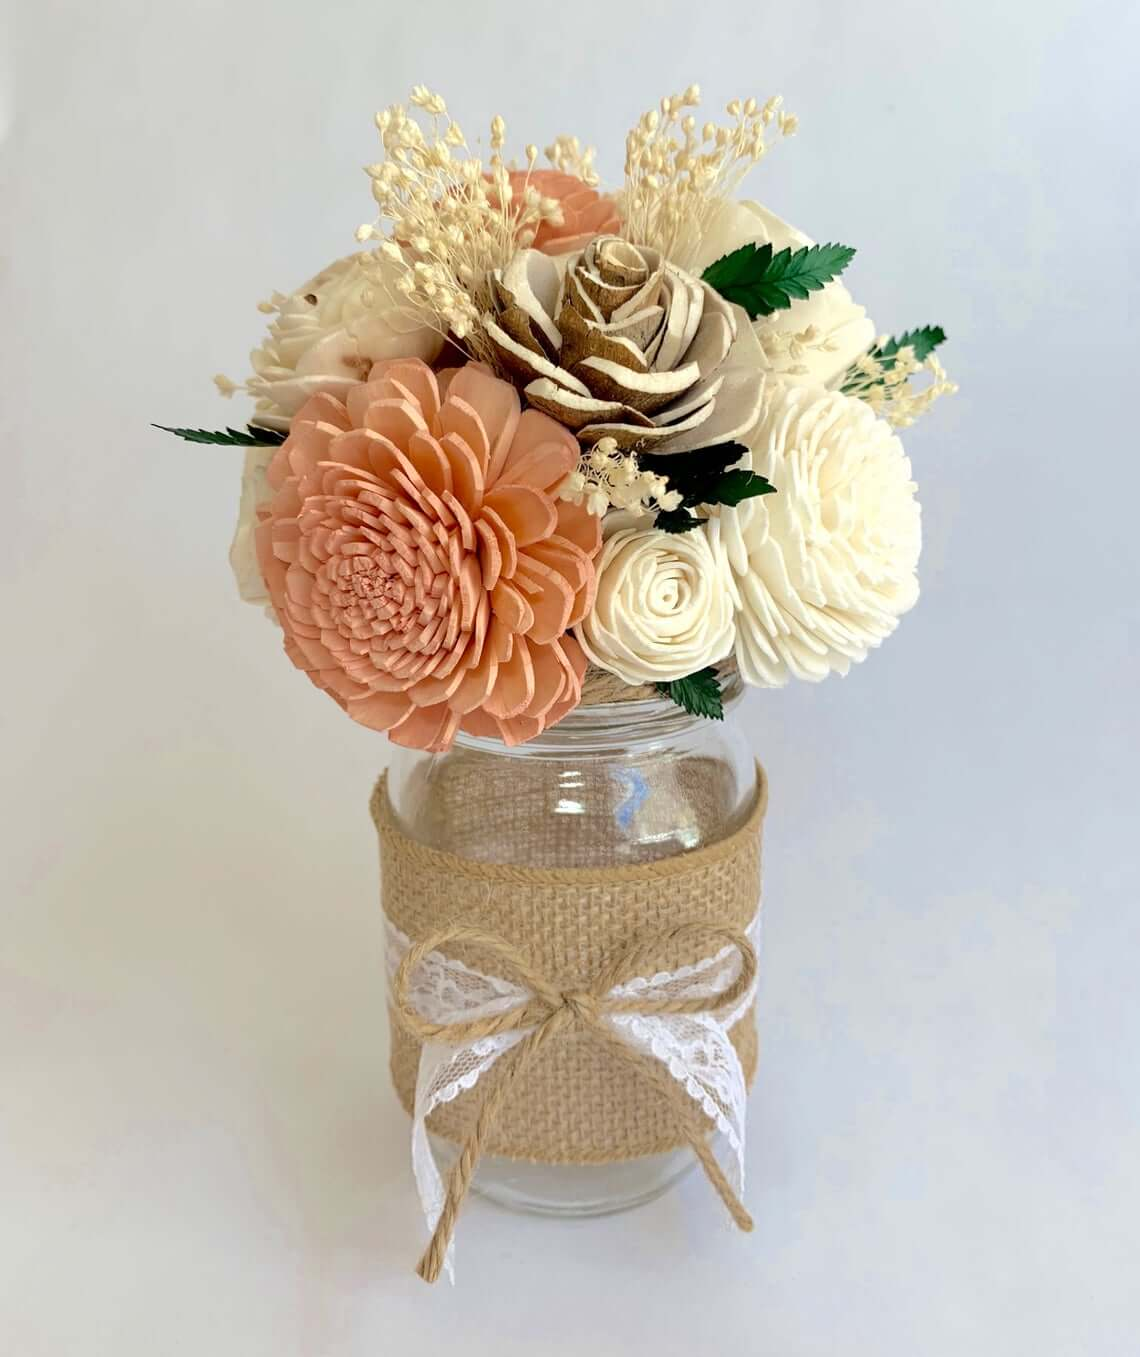 Rustic Country Burlap and Bows Jar Vase